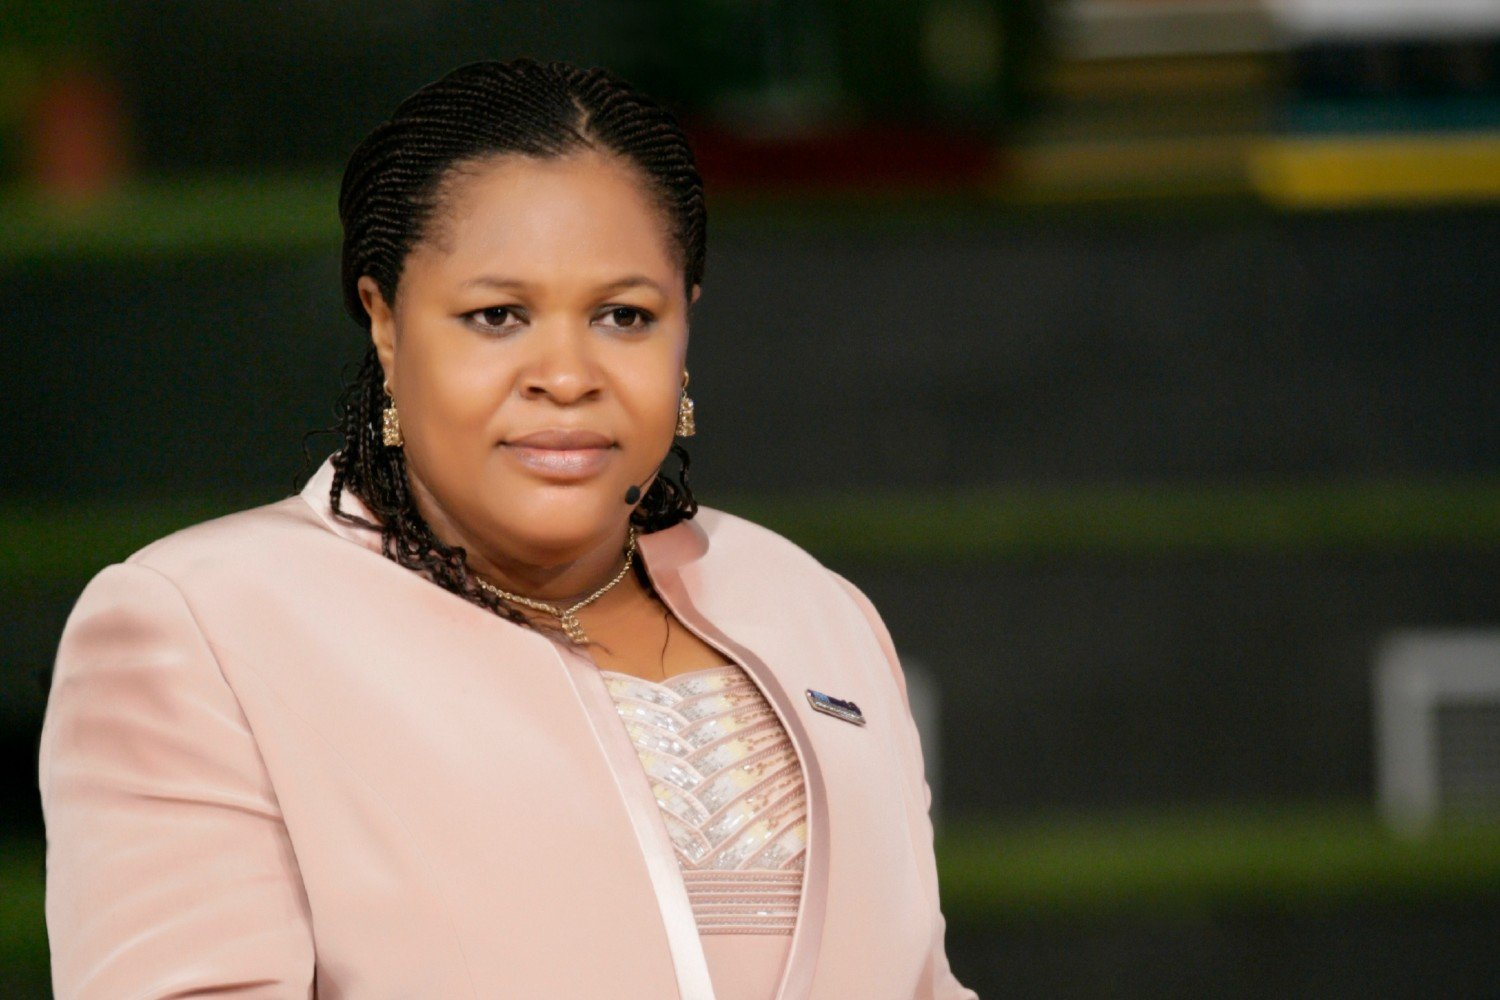 SCOAN names TB Joshua's wife, Evelyn as new leader - details